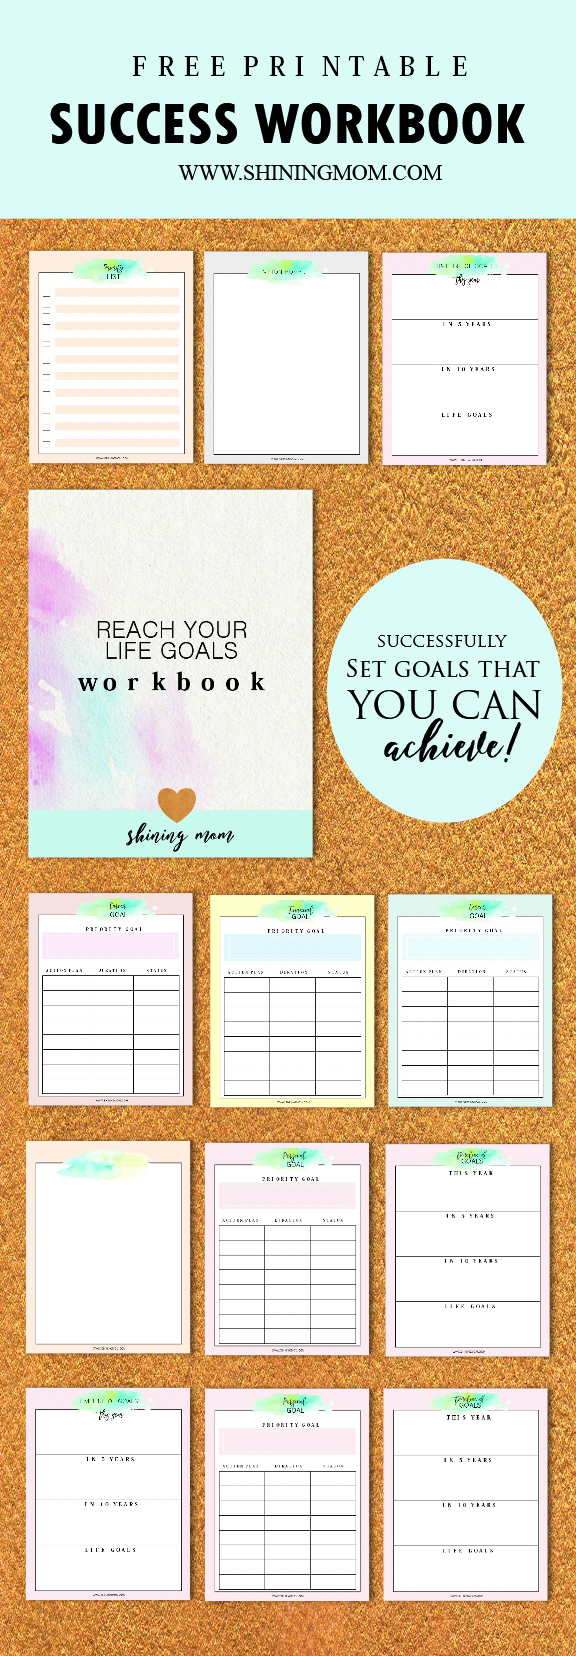 Success Workbook, goal setting worksheet